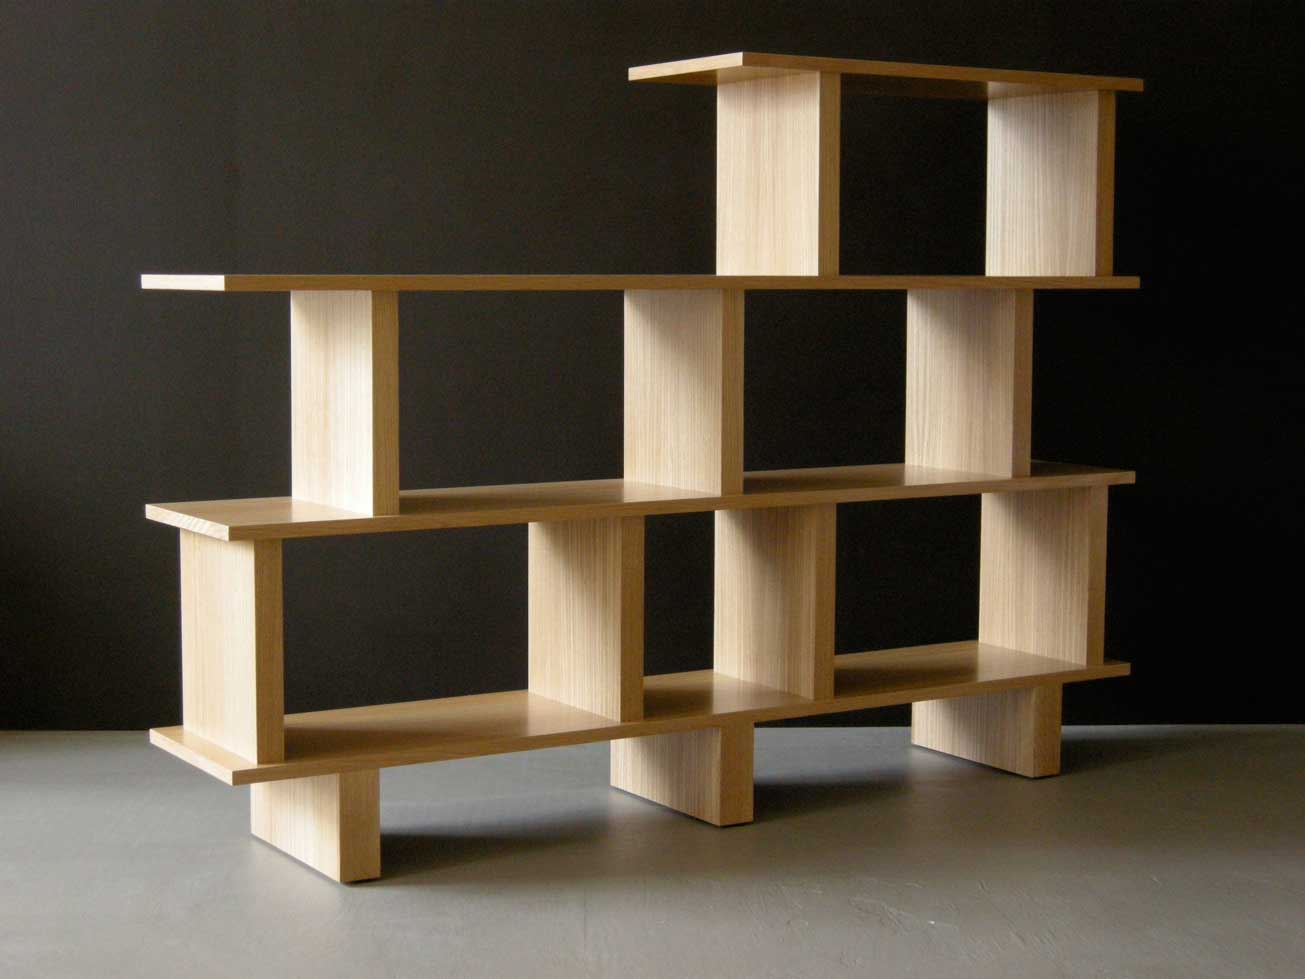 Bookcas Design Bookshelves Bookcases Design Design